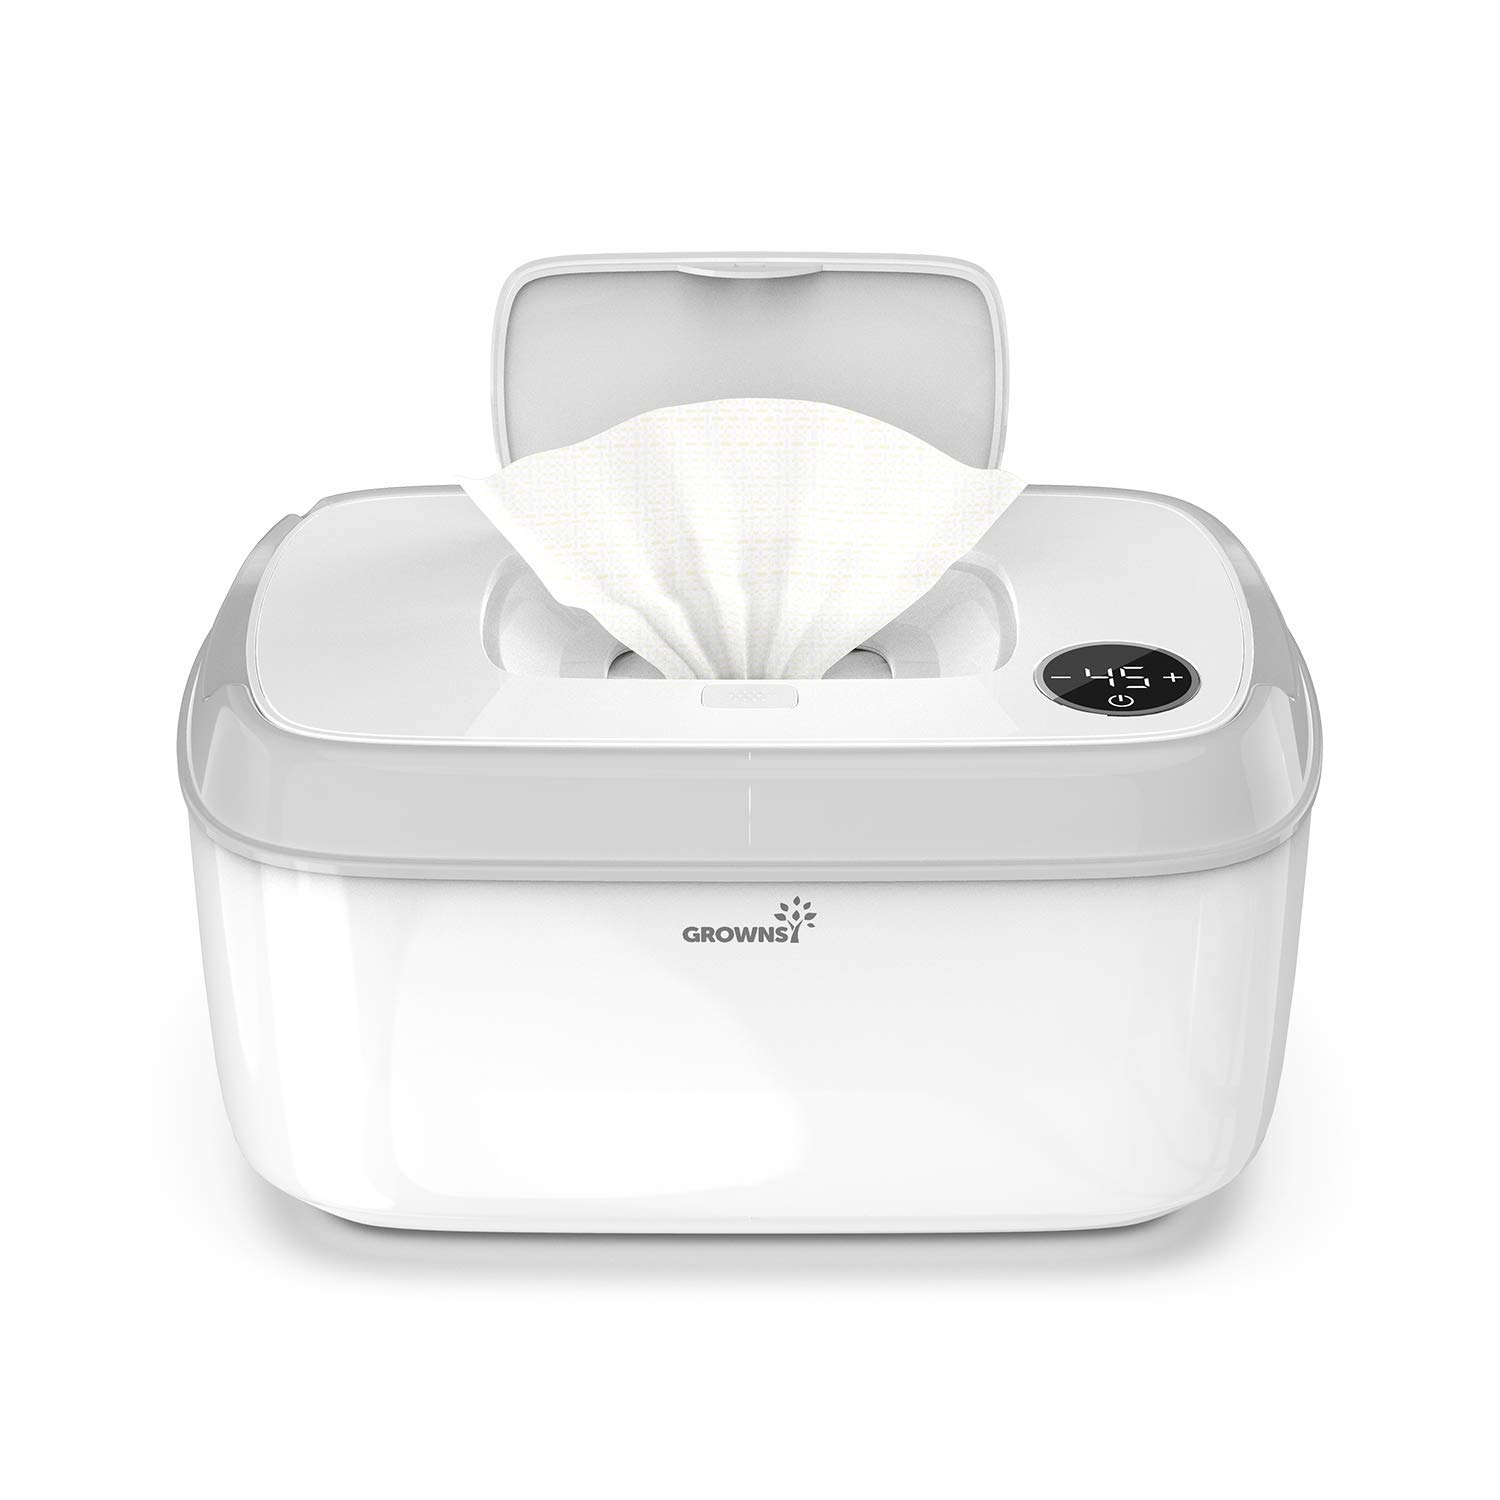 Wipe Warmer, Baby Diaper Wipes Dispenser Holder BPA-Free with Precise Temperature Control, Evenly and Quickly Top Heating, Large Capacity, Silent for Baby, Perfect Warmth